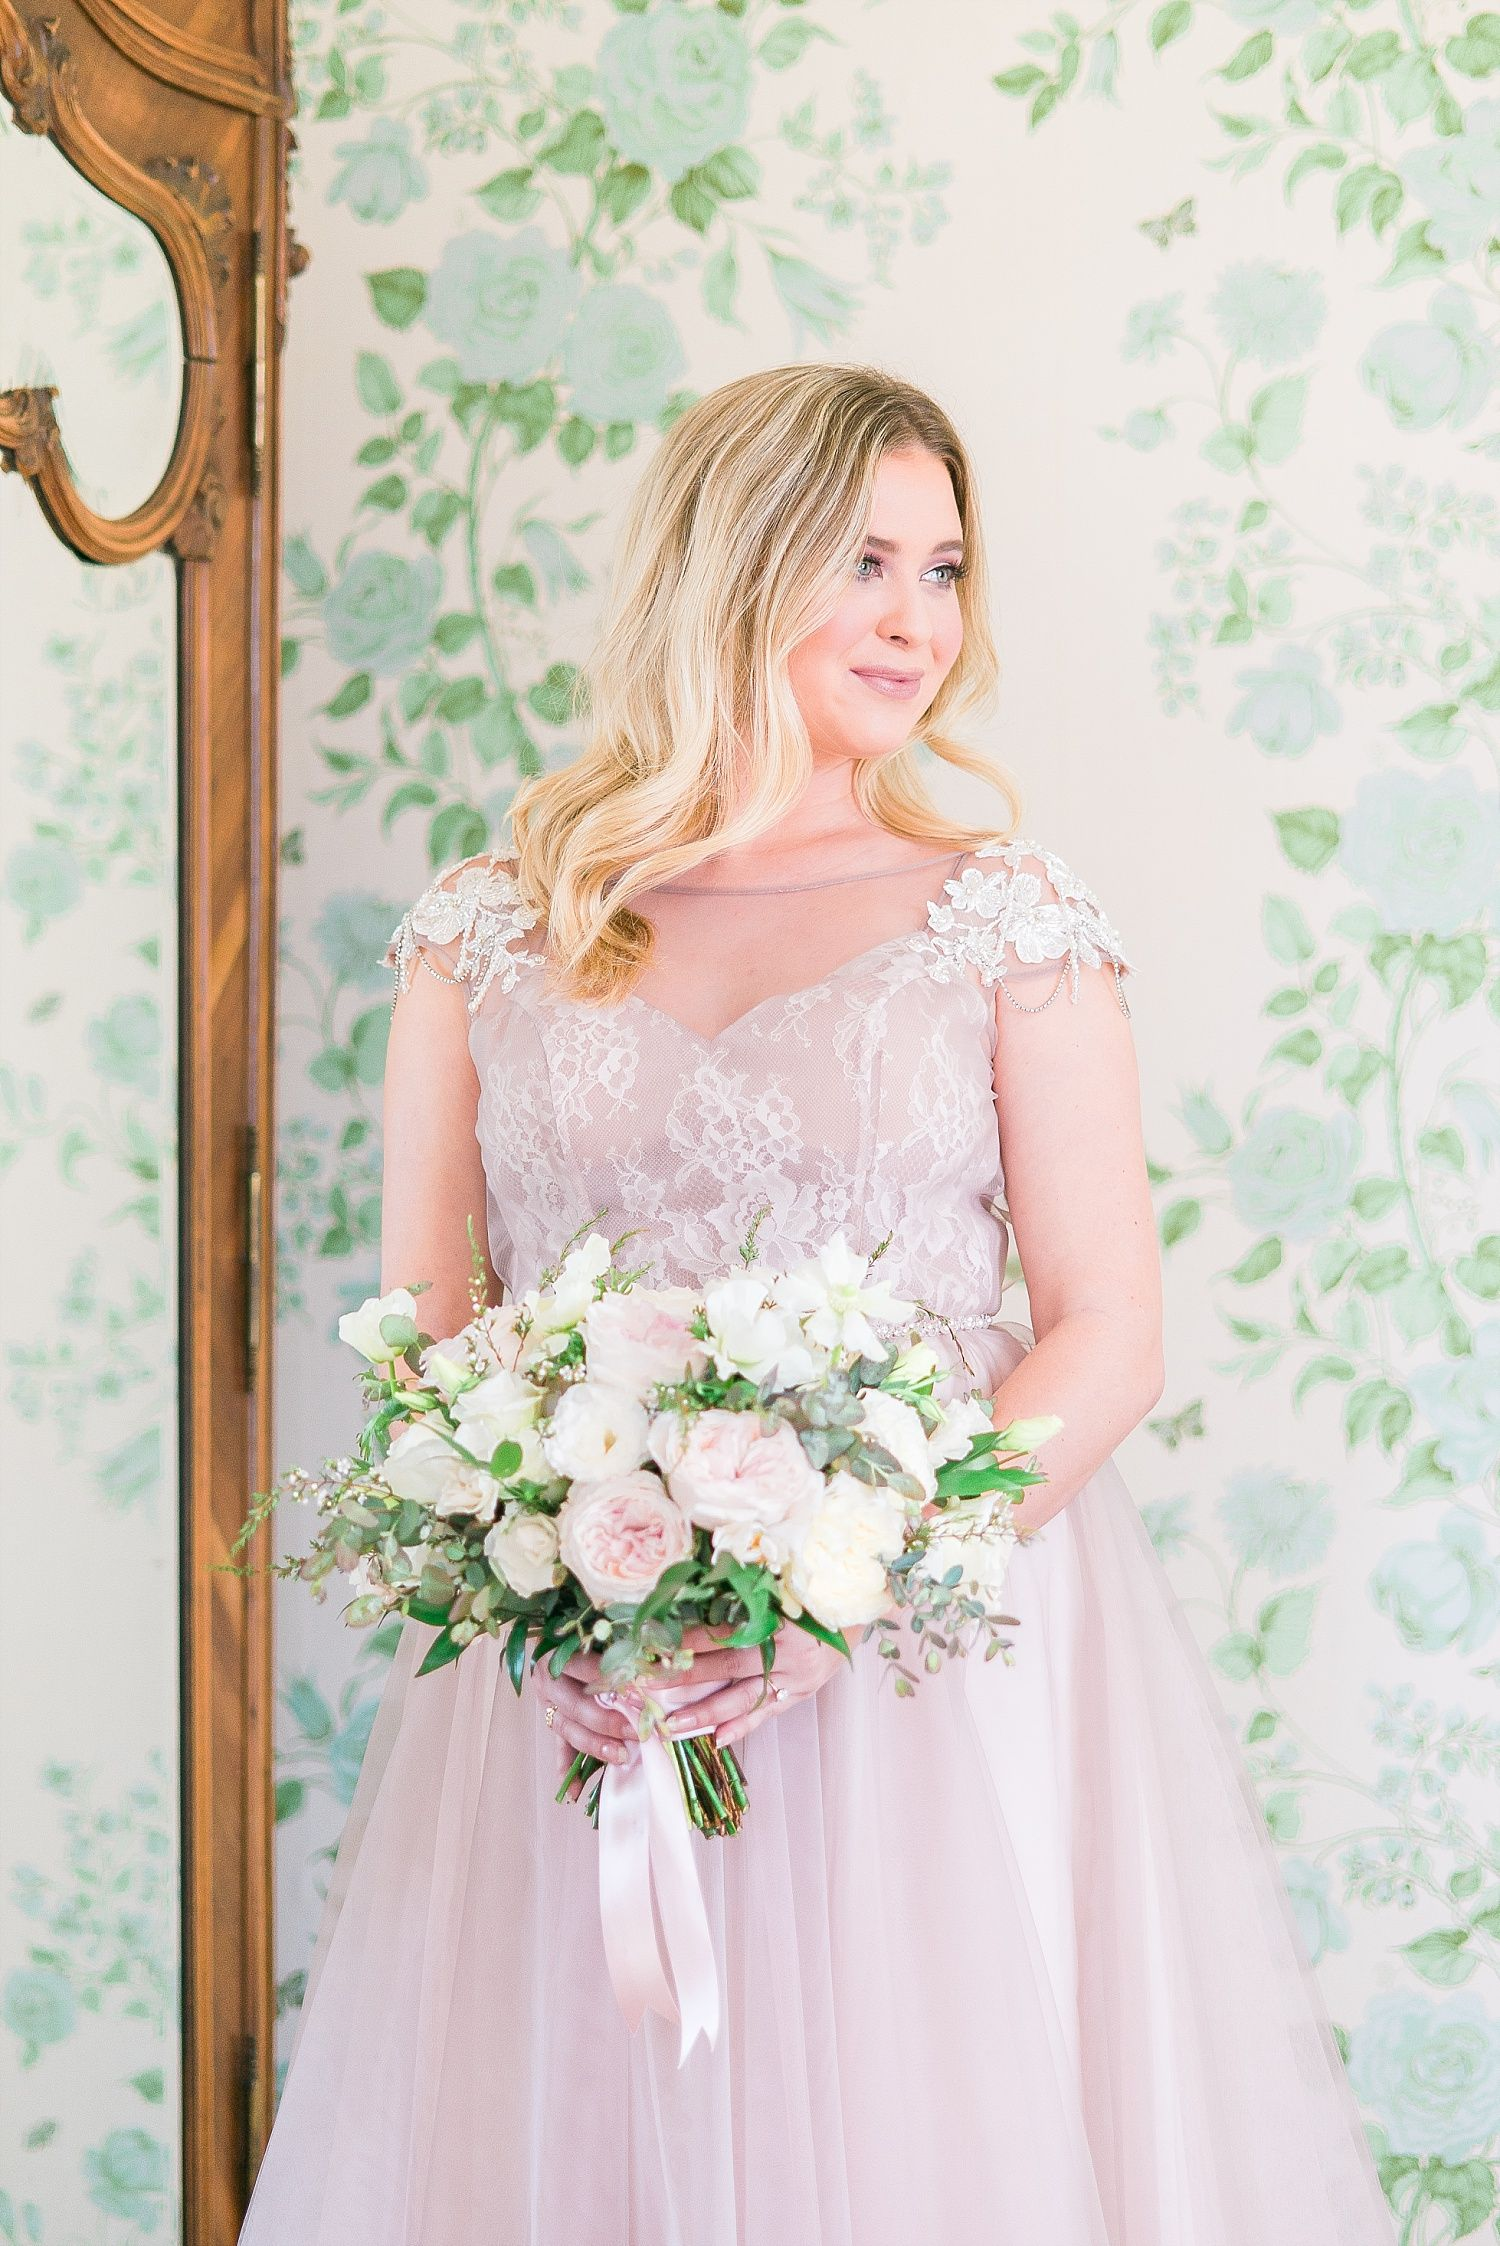 Beautiful Pink And White Bridal Bouquet With White And Green Dusty Pink Bridal Gown Pale Pink W Top Wedding Dresses Pink Wedding Gowns White Bridal Bouquet [ 2246 x 1500 Pixel ]